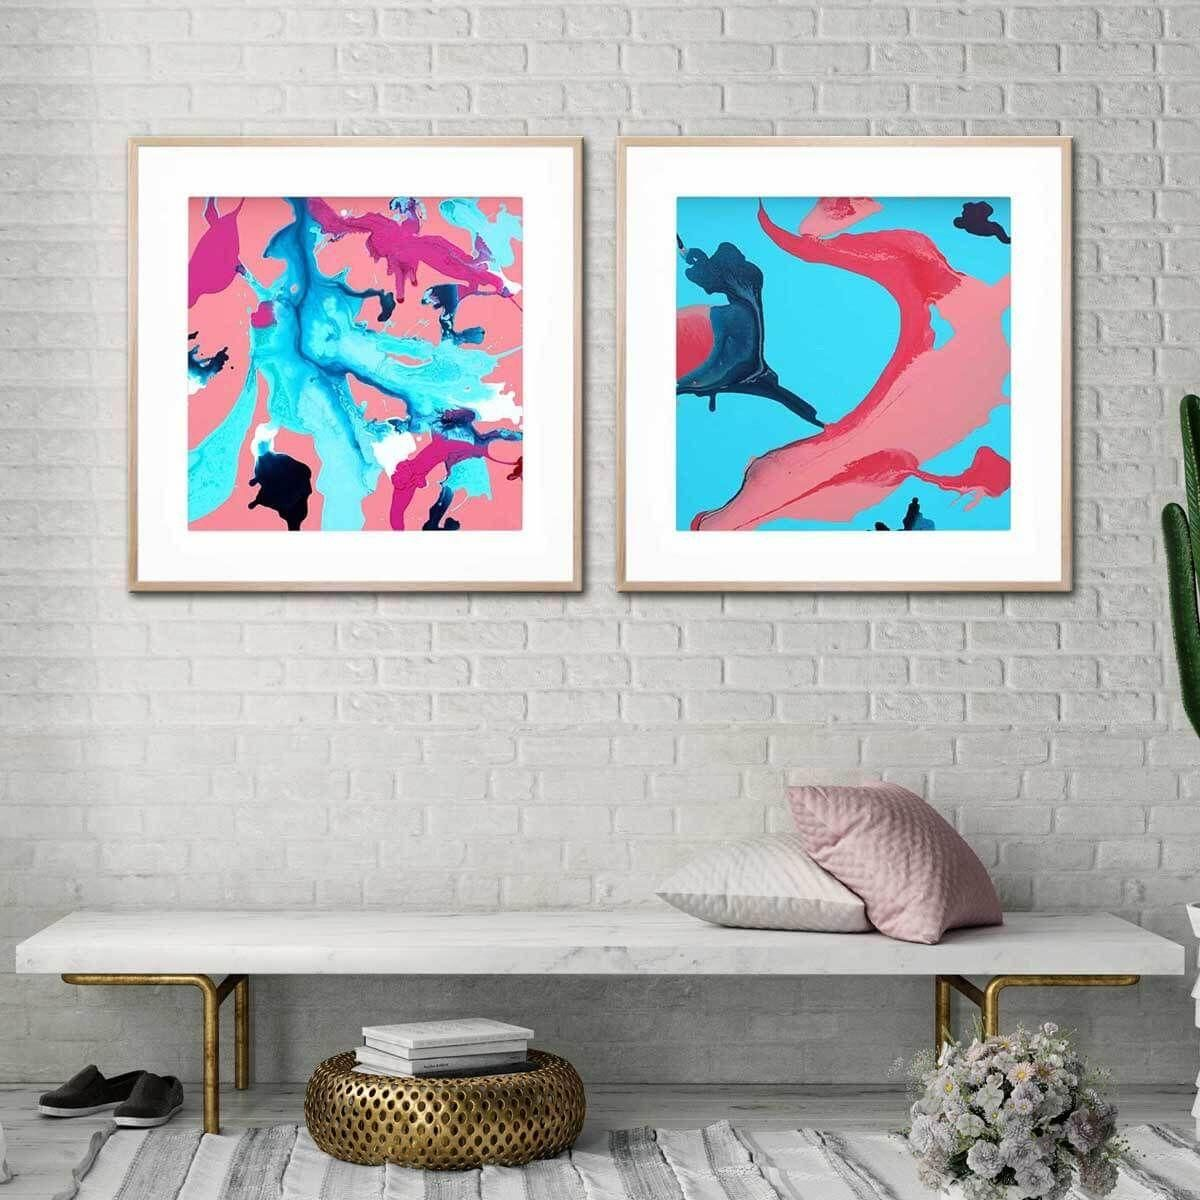 Framed Prints Online | Buy Framed Prints Online, Shipped Across ...